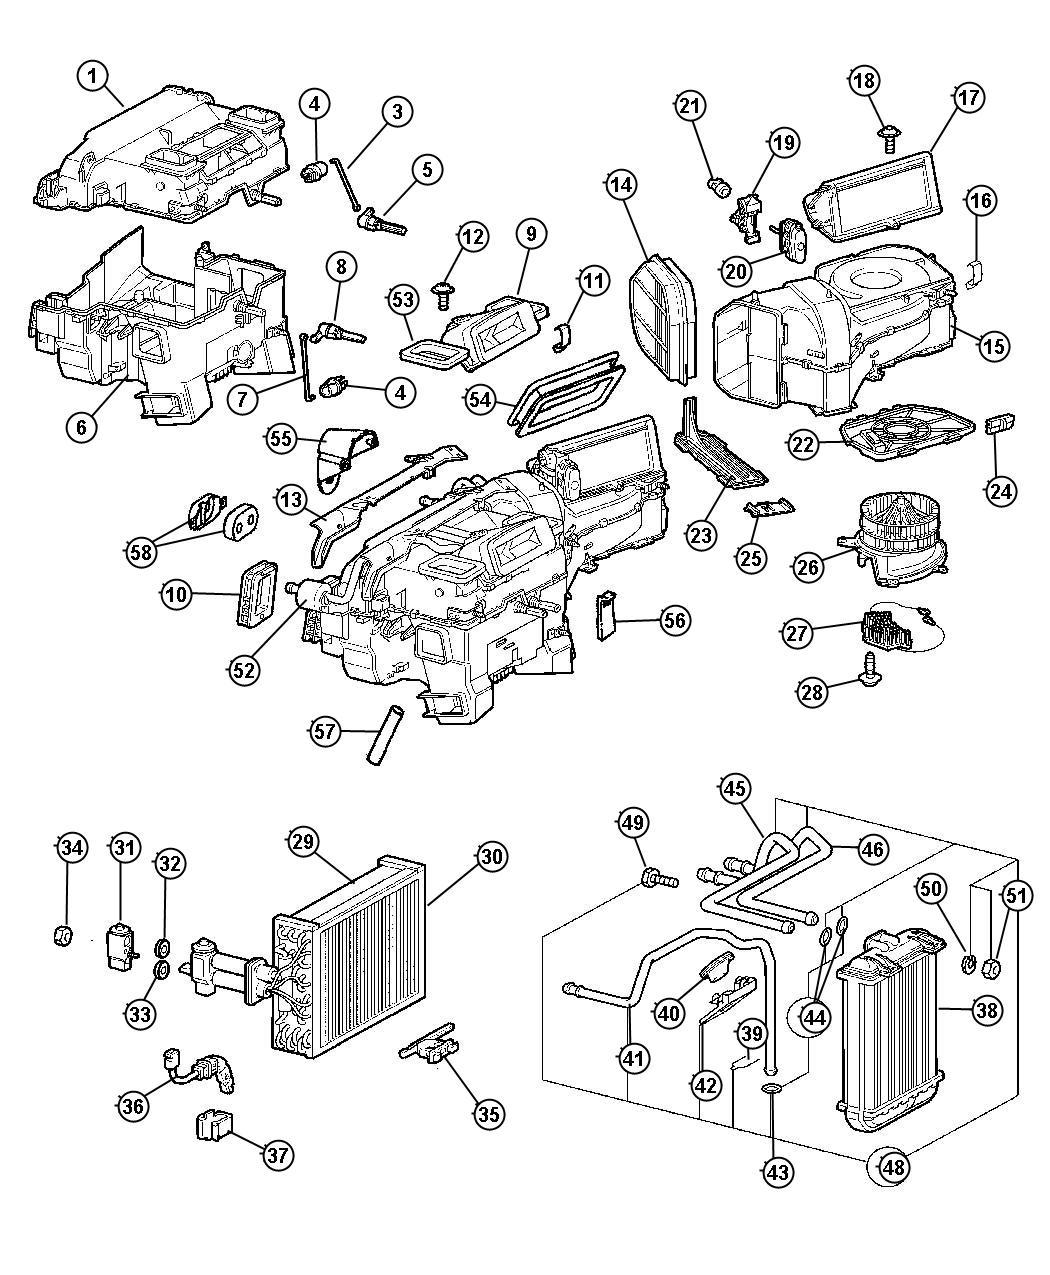 2002 mercedes c320 fuse box diagram